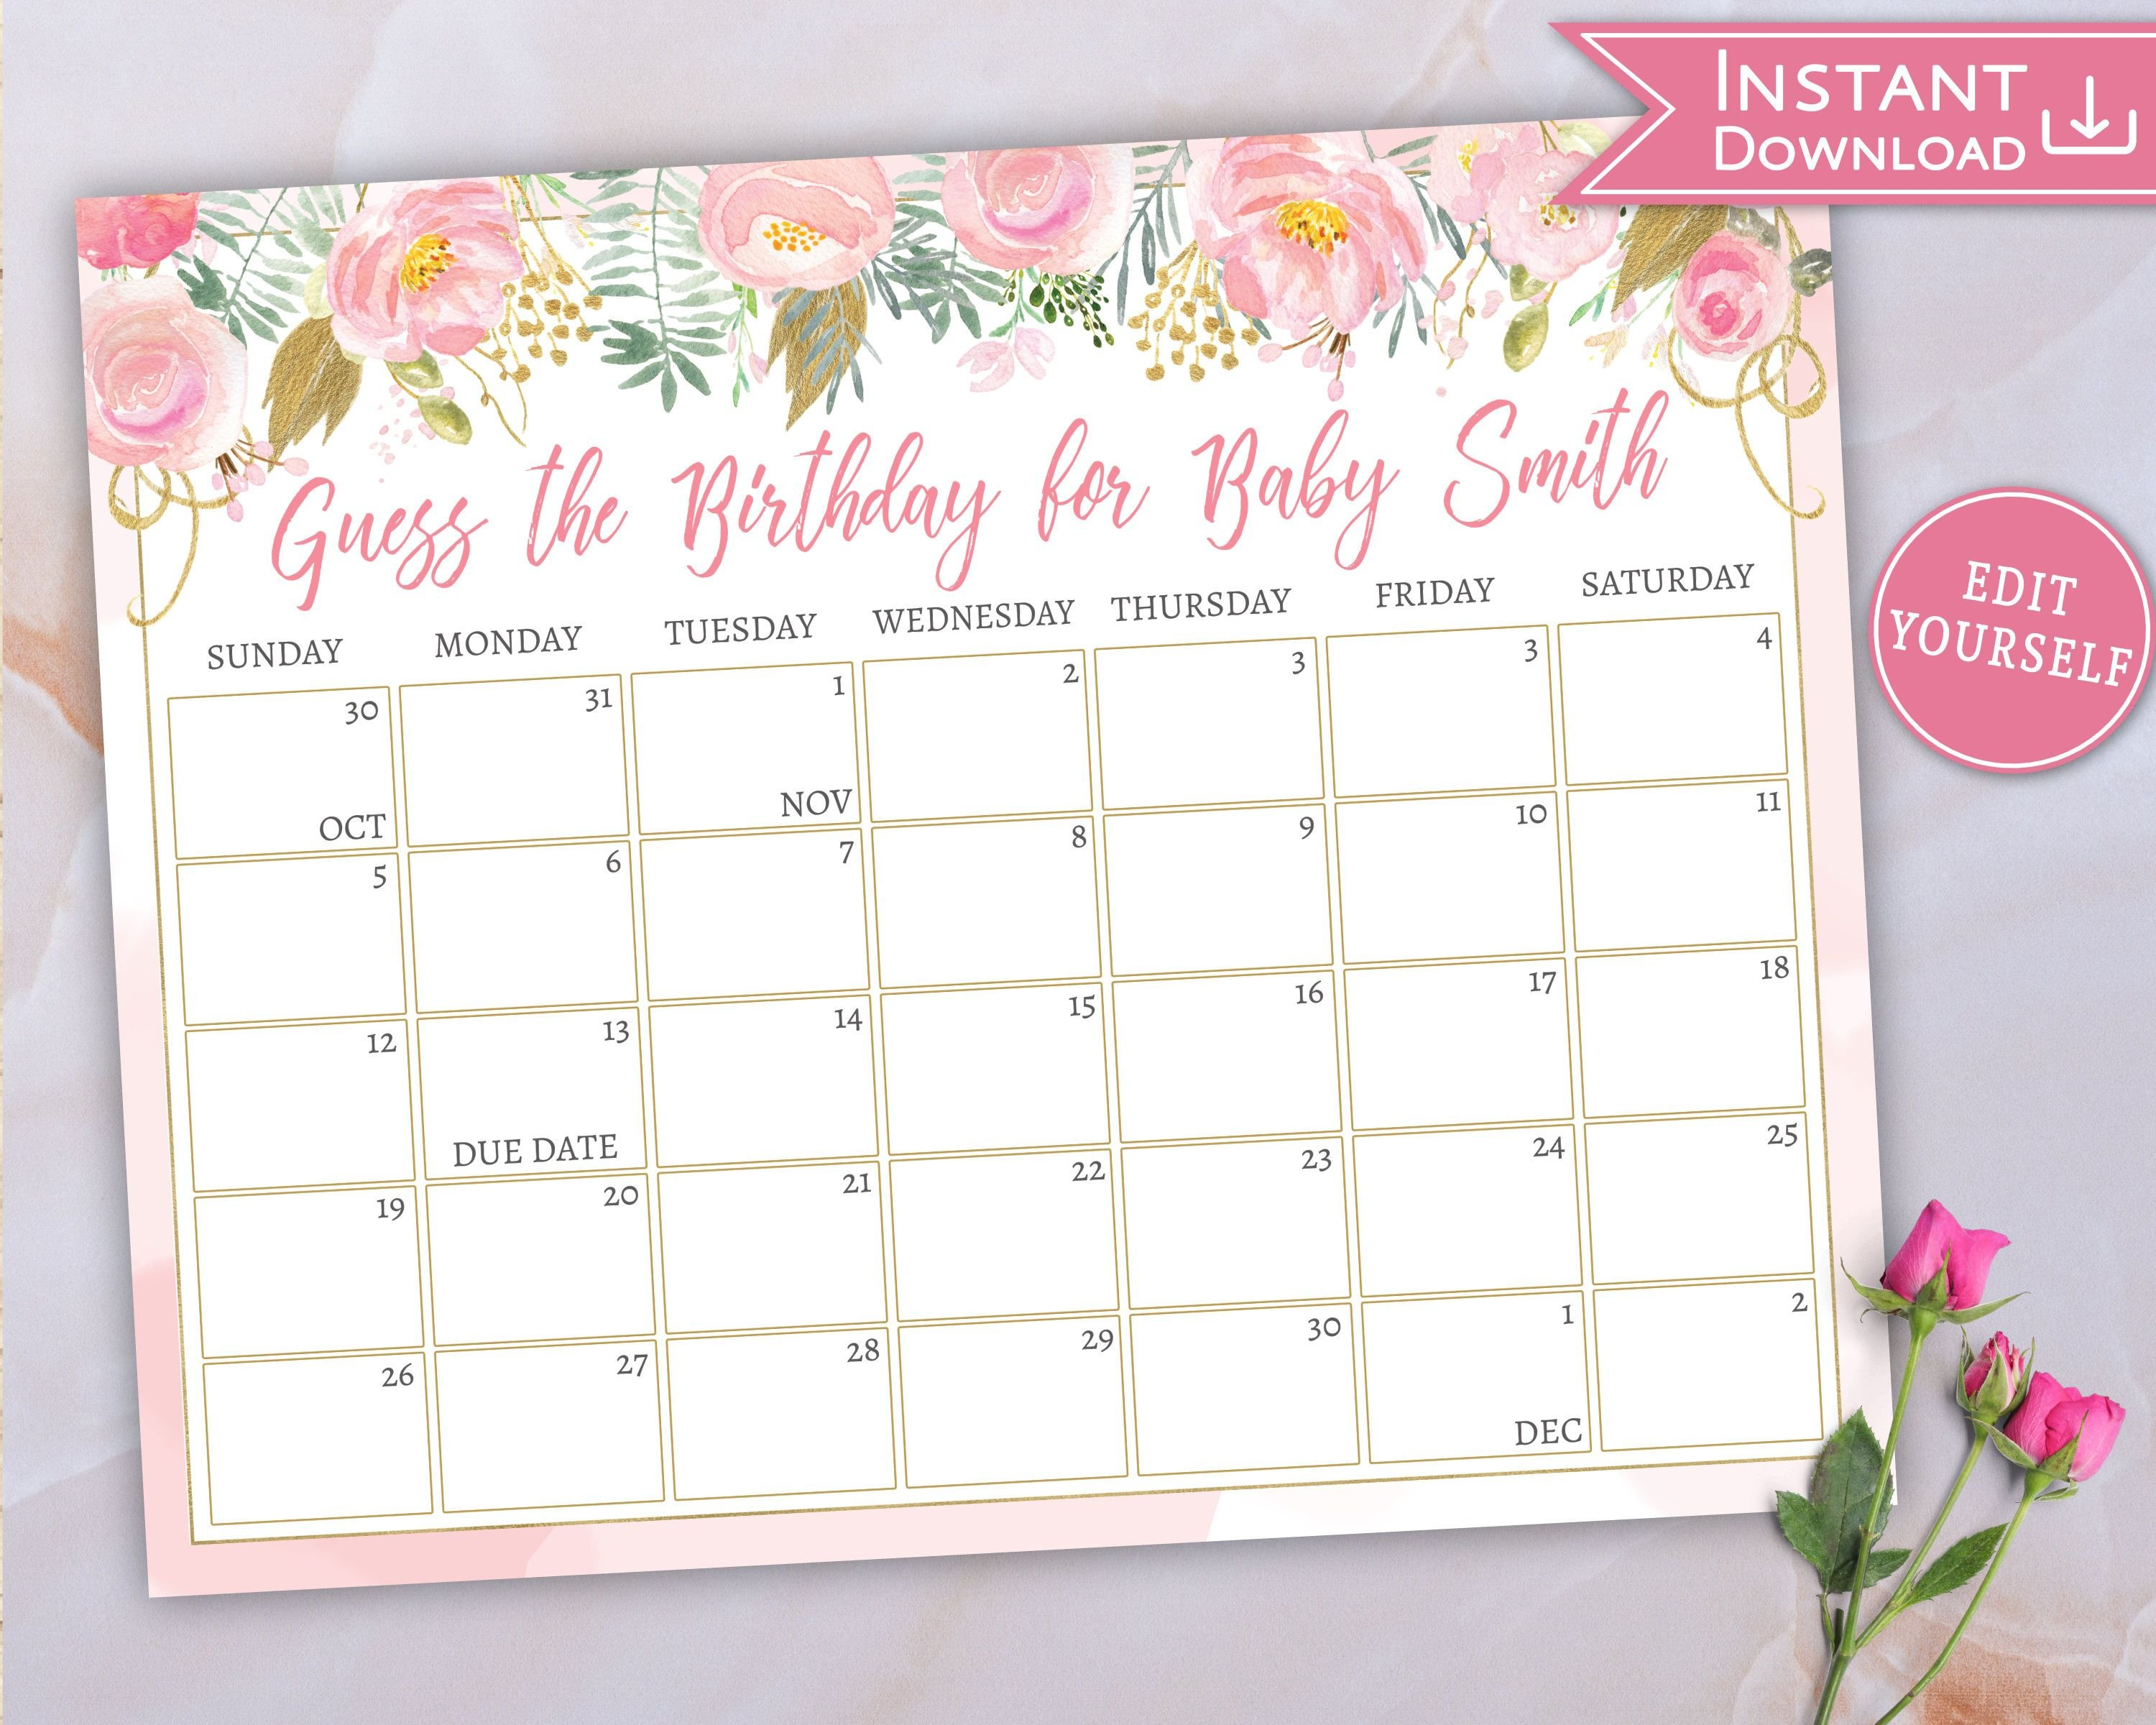 Baby Due Date Calendar, Guess Baby's Birthday, Floral Pink Calendar For Guessing Baby Due Date